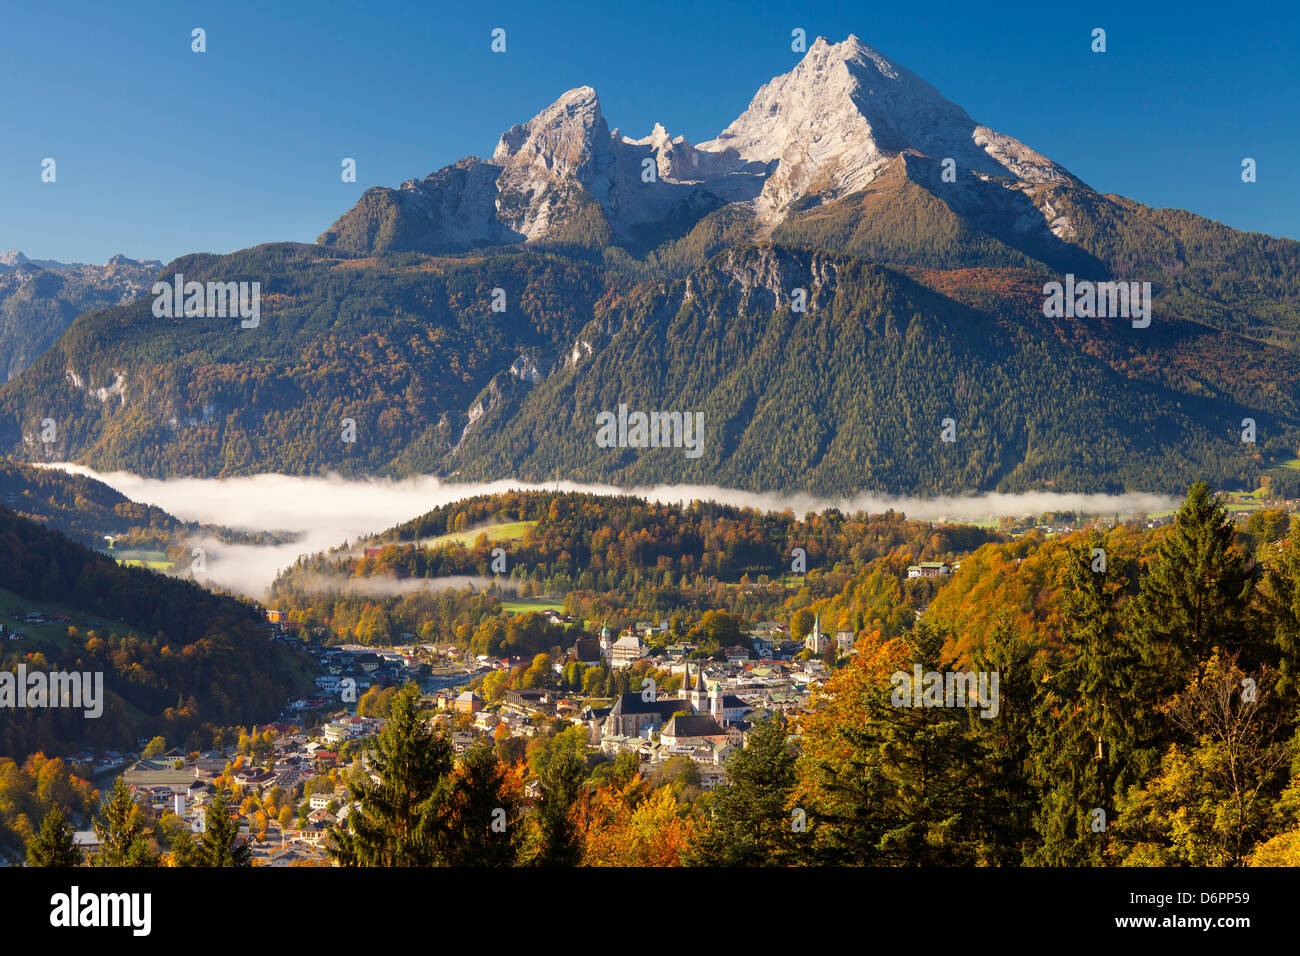 View of Berchtesgaden in autumn with the Watzmann mountain in the background, Berchtesgaden, Bavaria, Germany, Europe - Stock Image